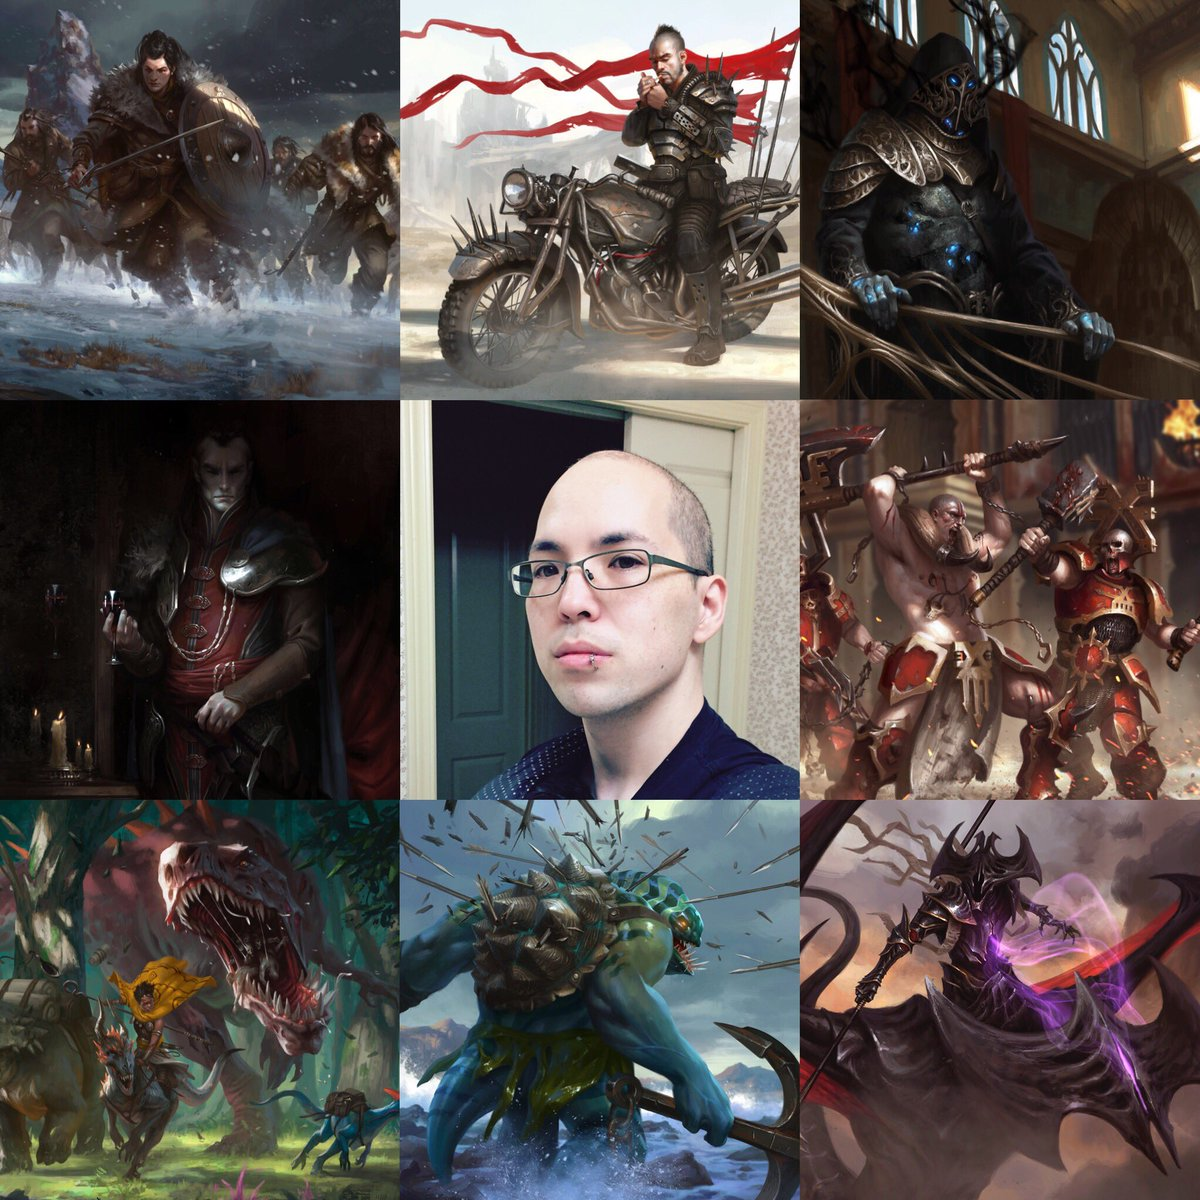 test Twitter Media - I'm a freelance artist and I like eating cupcakes. #artvsartist #mtg #Warhammer #DnD #dota2 https://t.co/W3HoFy4Cdt